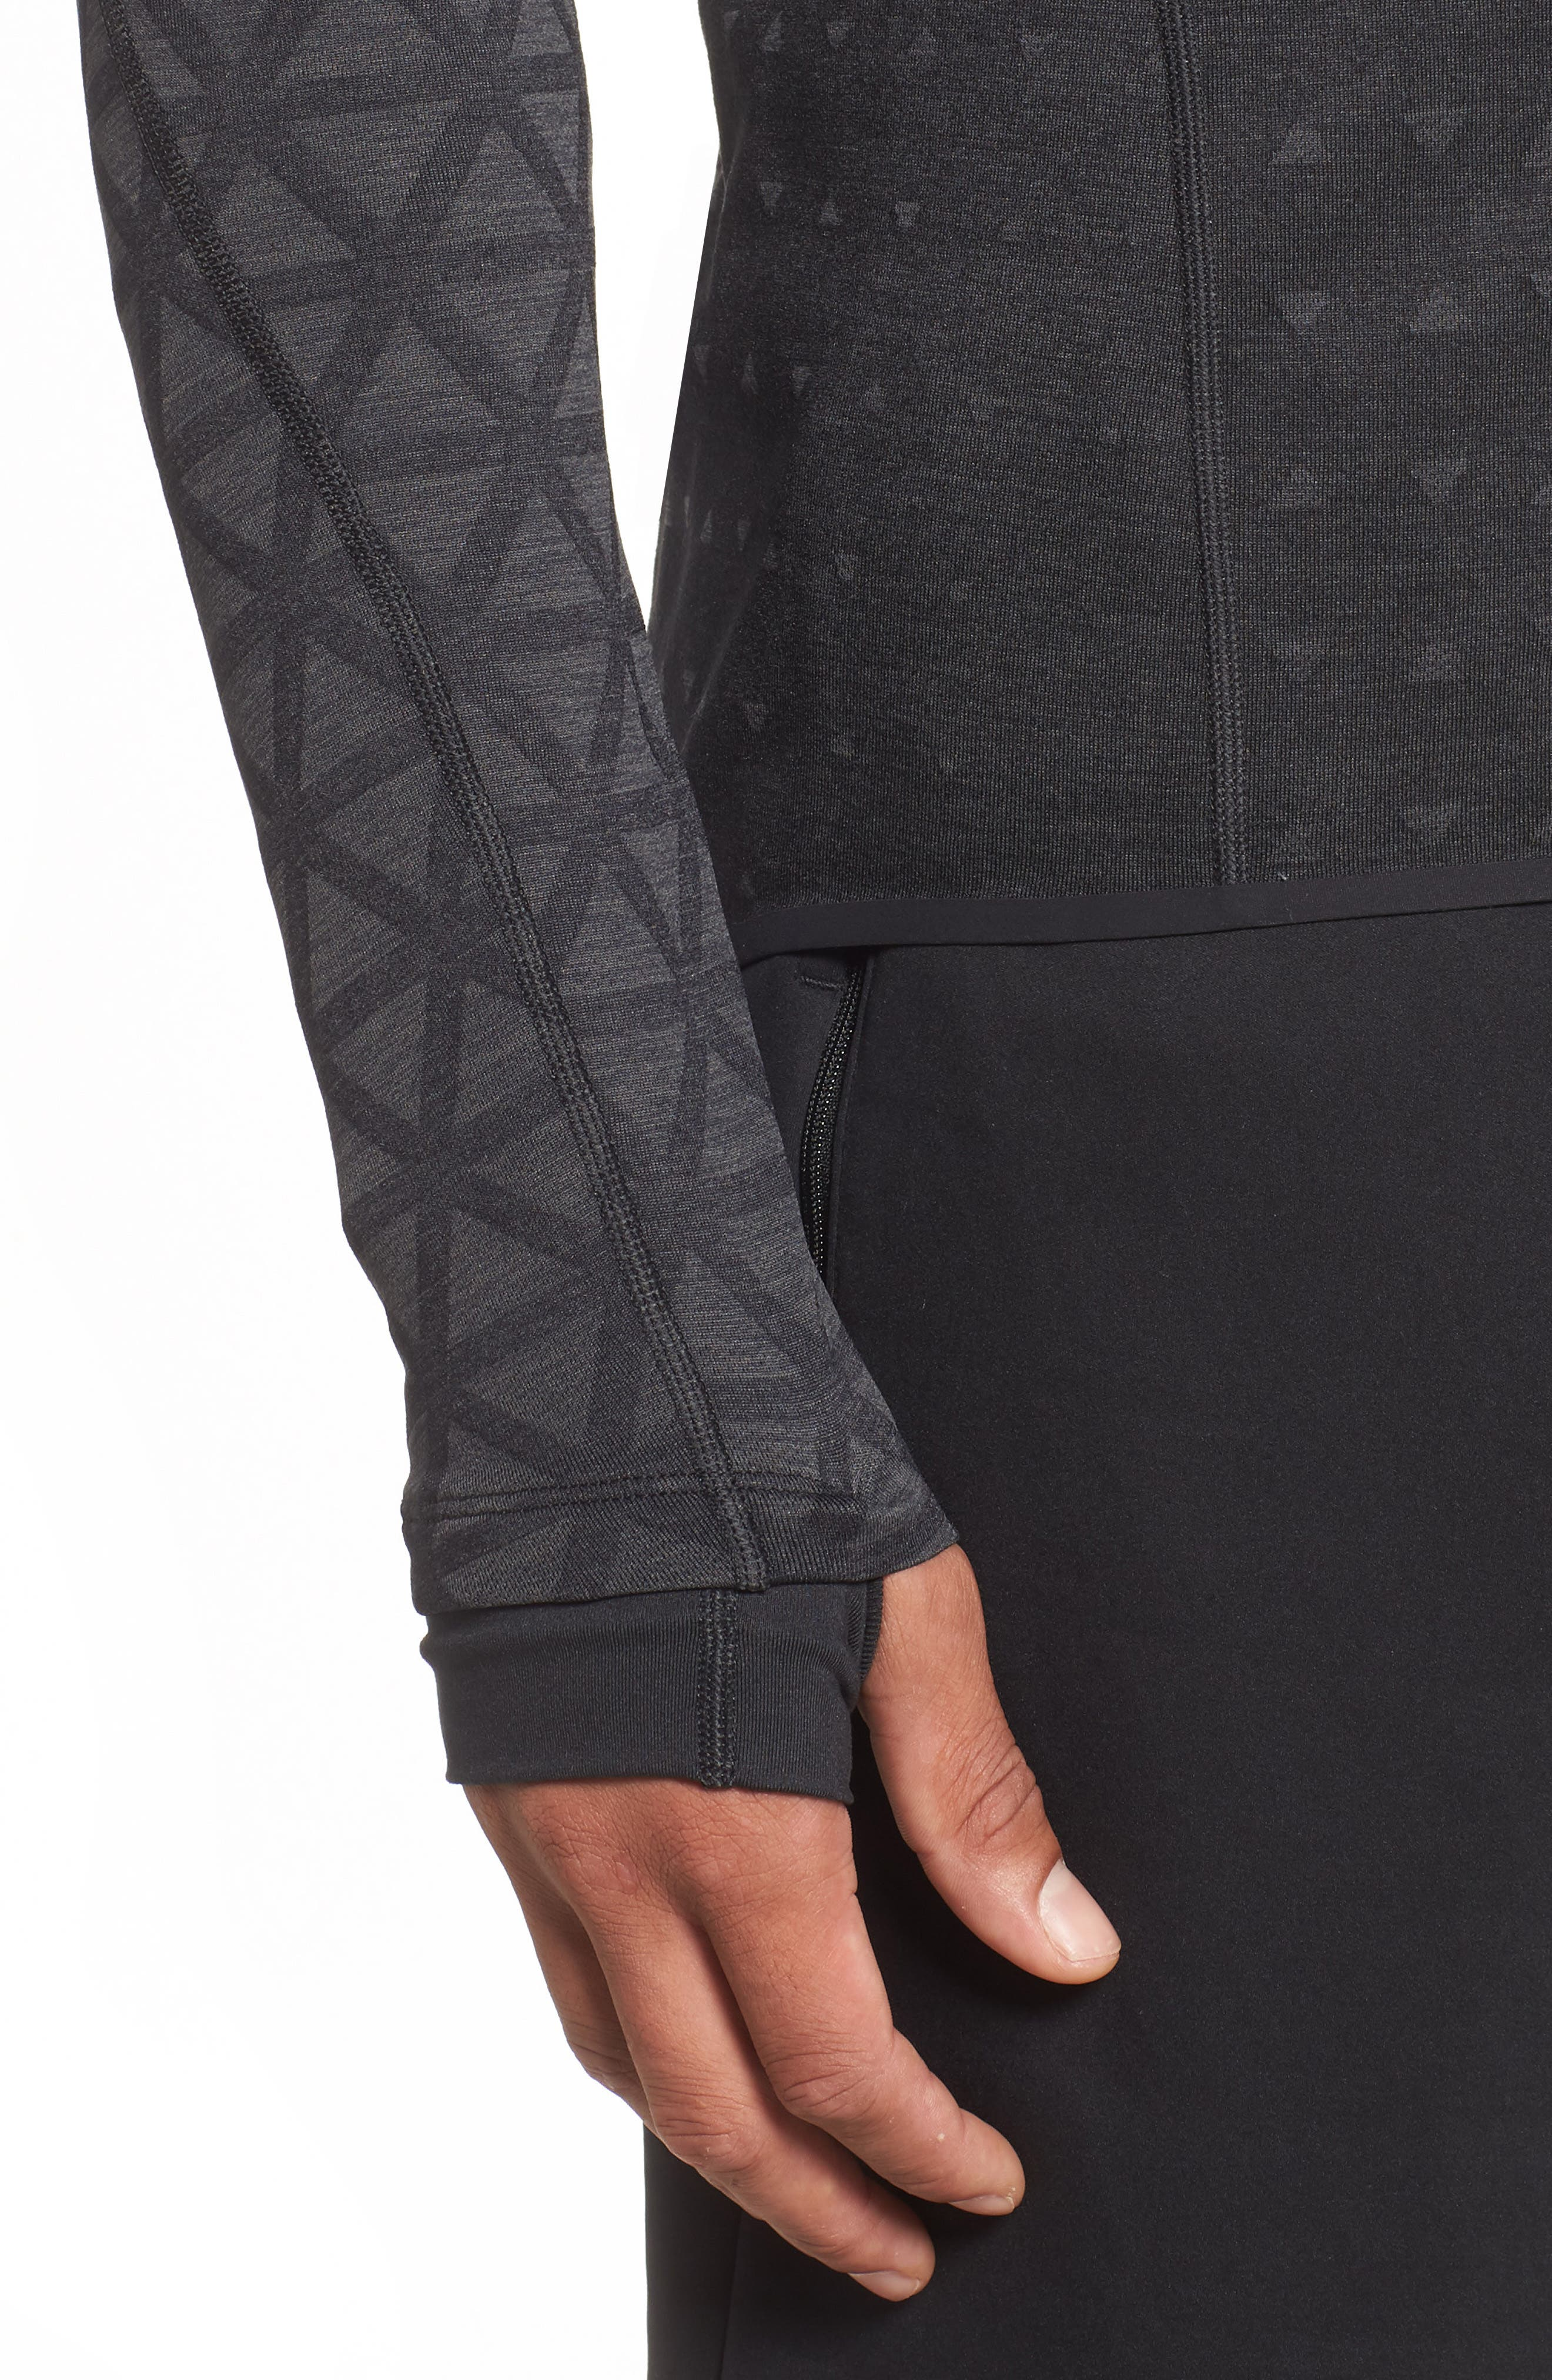 Therma Sphere Hooded Training Top,                             Alternate thumbnail 4, color,                             BLACK/ ANTHRACITE/ ANTHRACITE